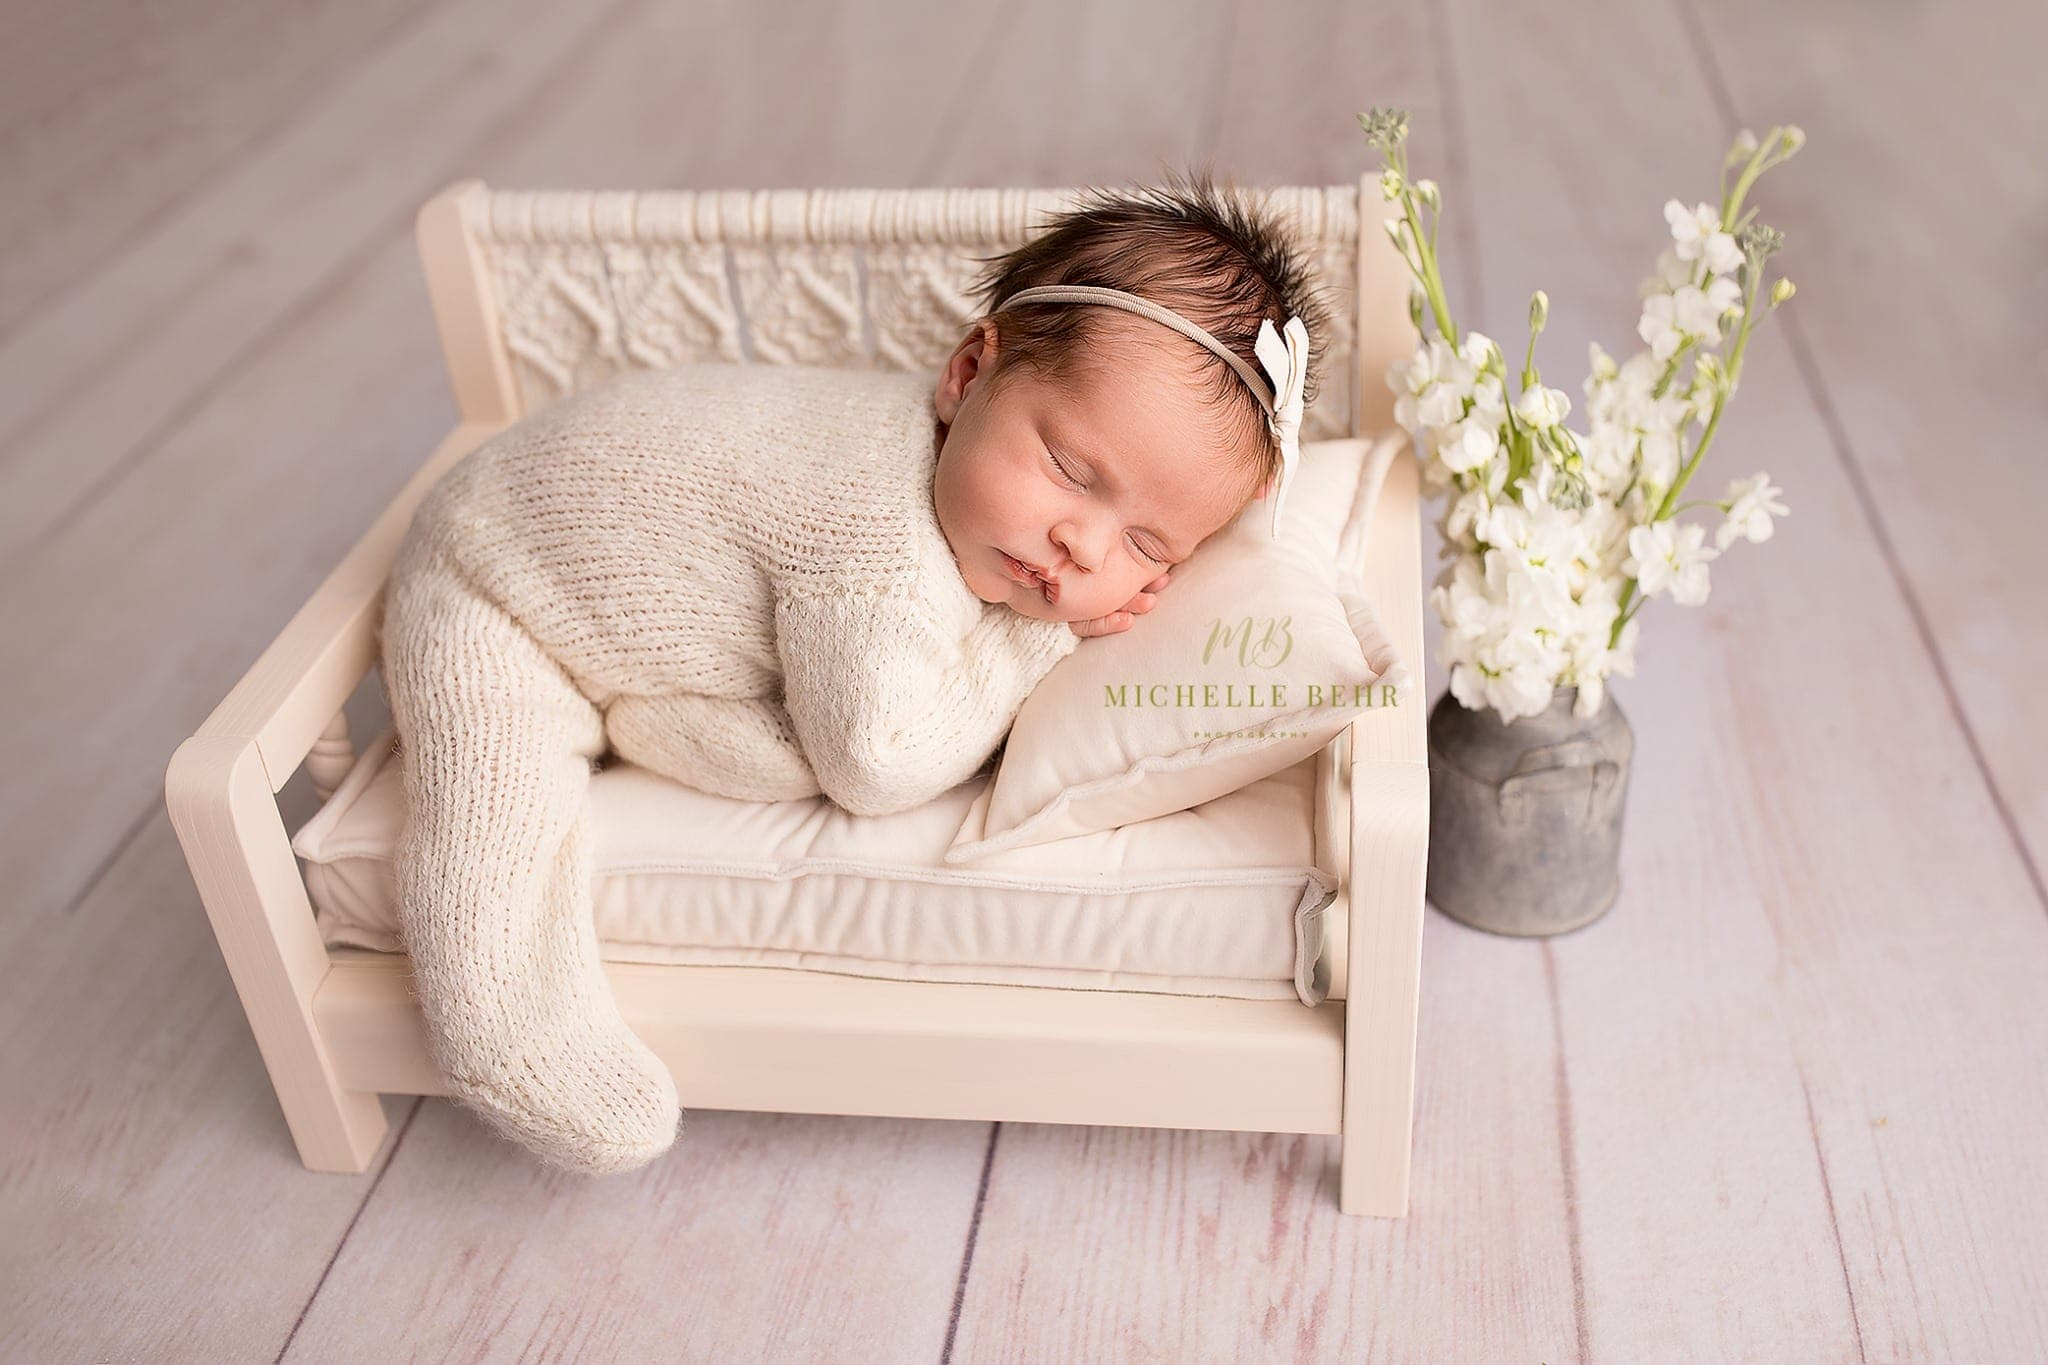 Two-sided velvet mattress with two pillows and headband for macrame beds,newborn photo prop